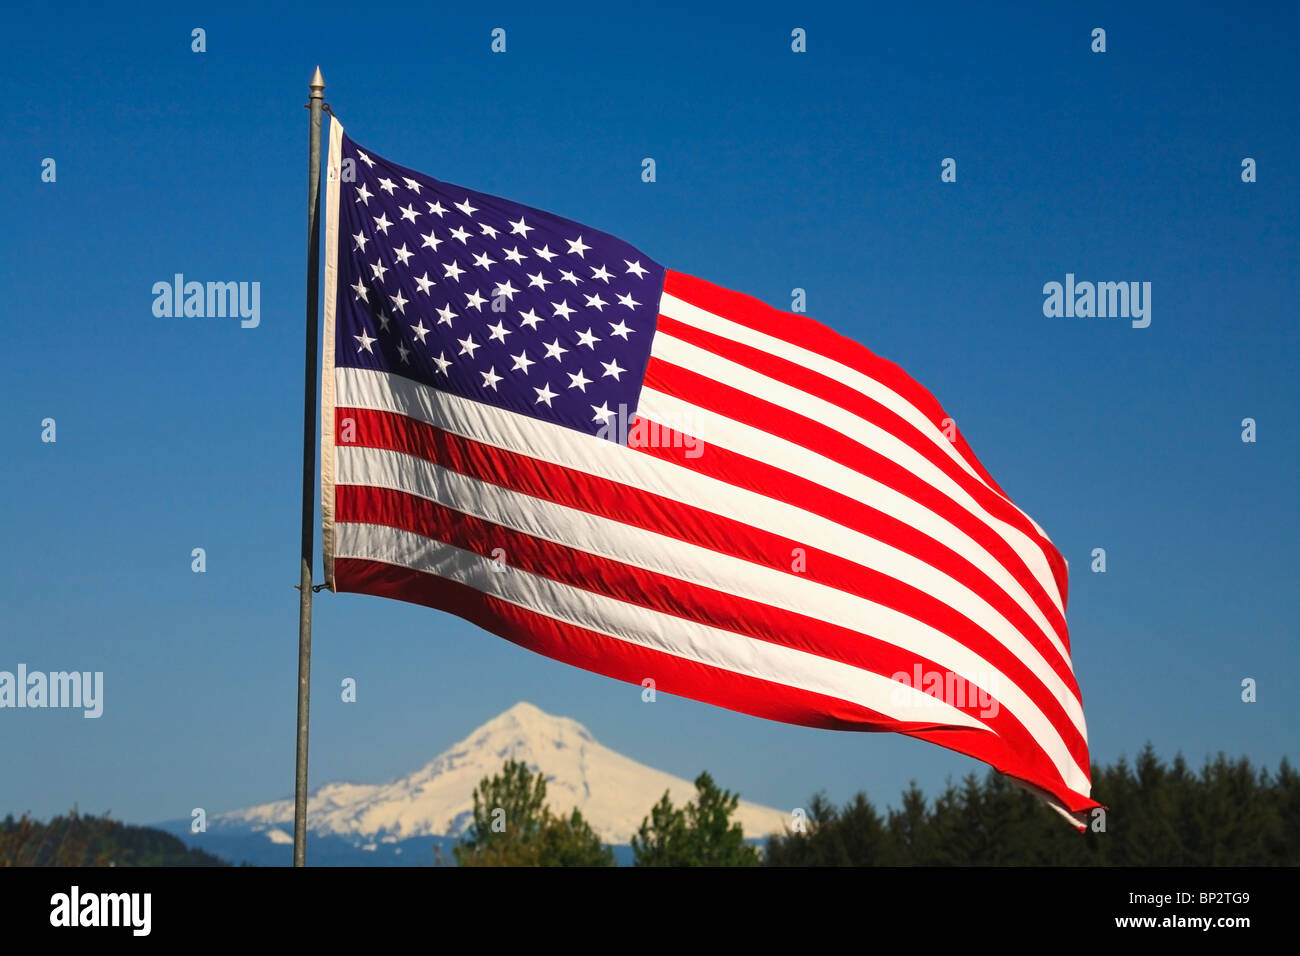 The American Flag - Stock Image